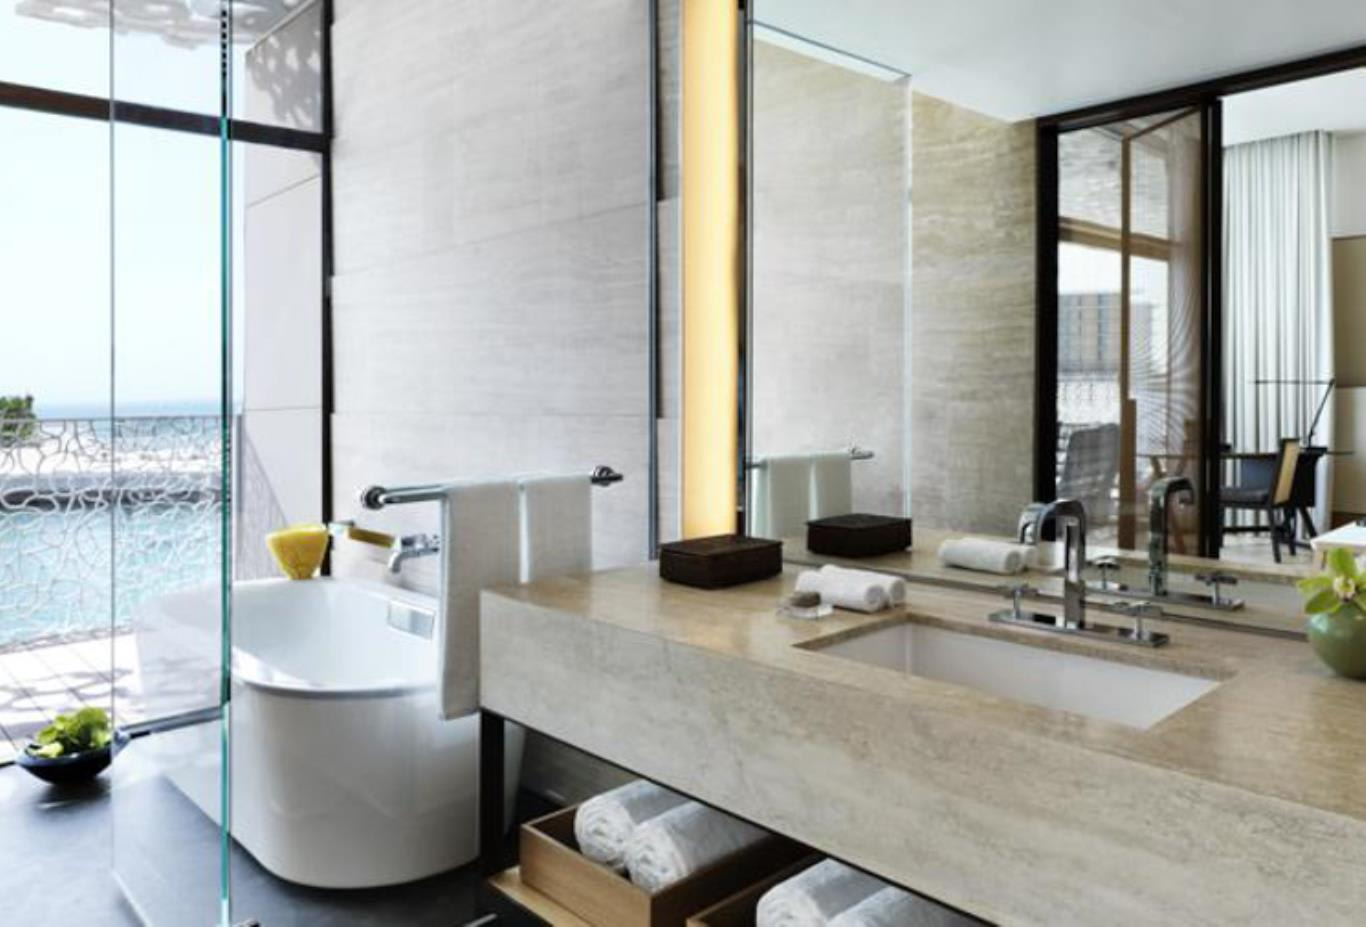 Bulgari bathroom